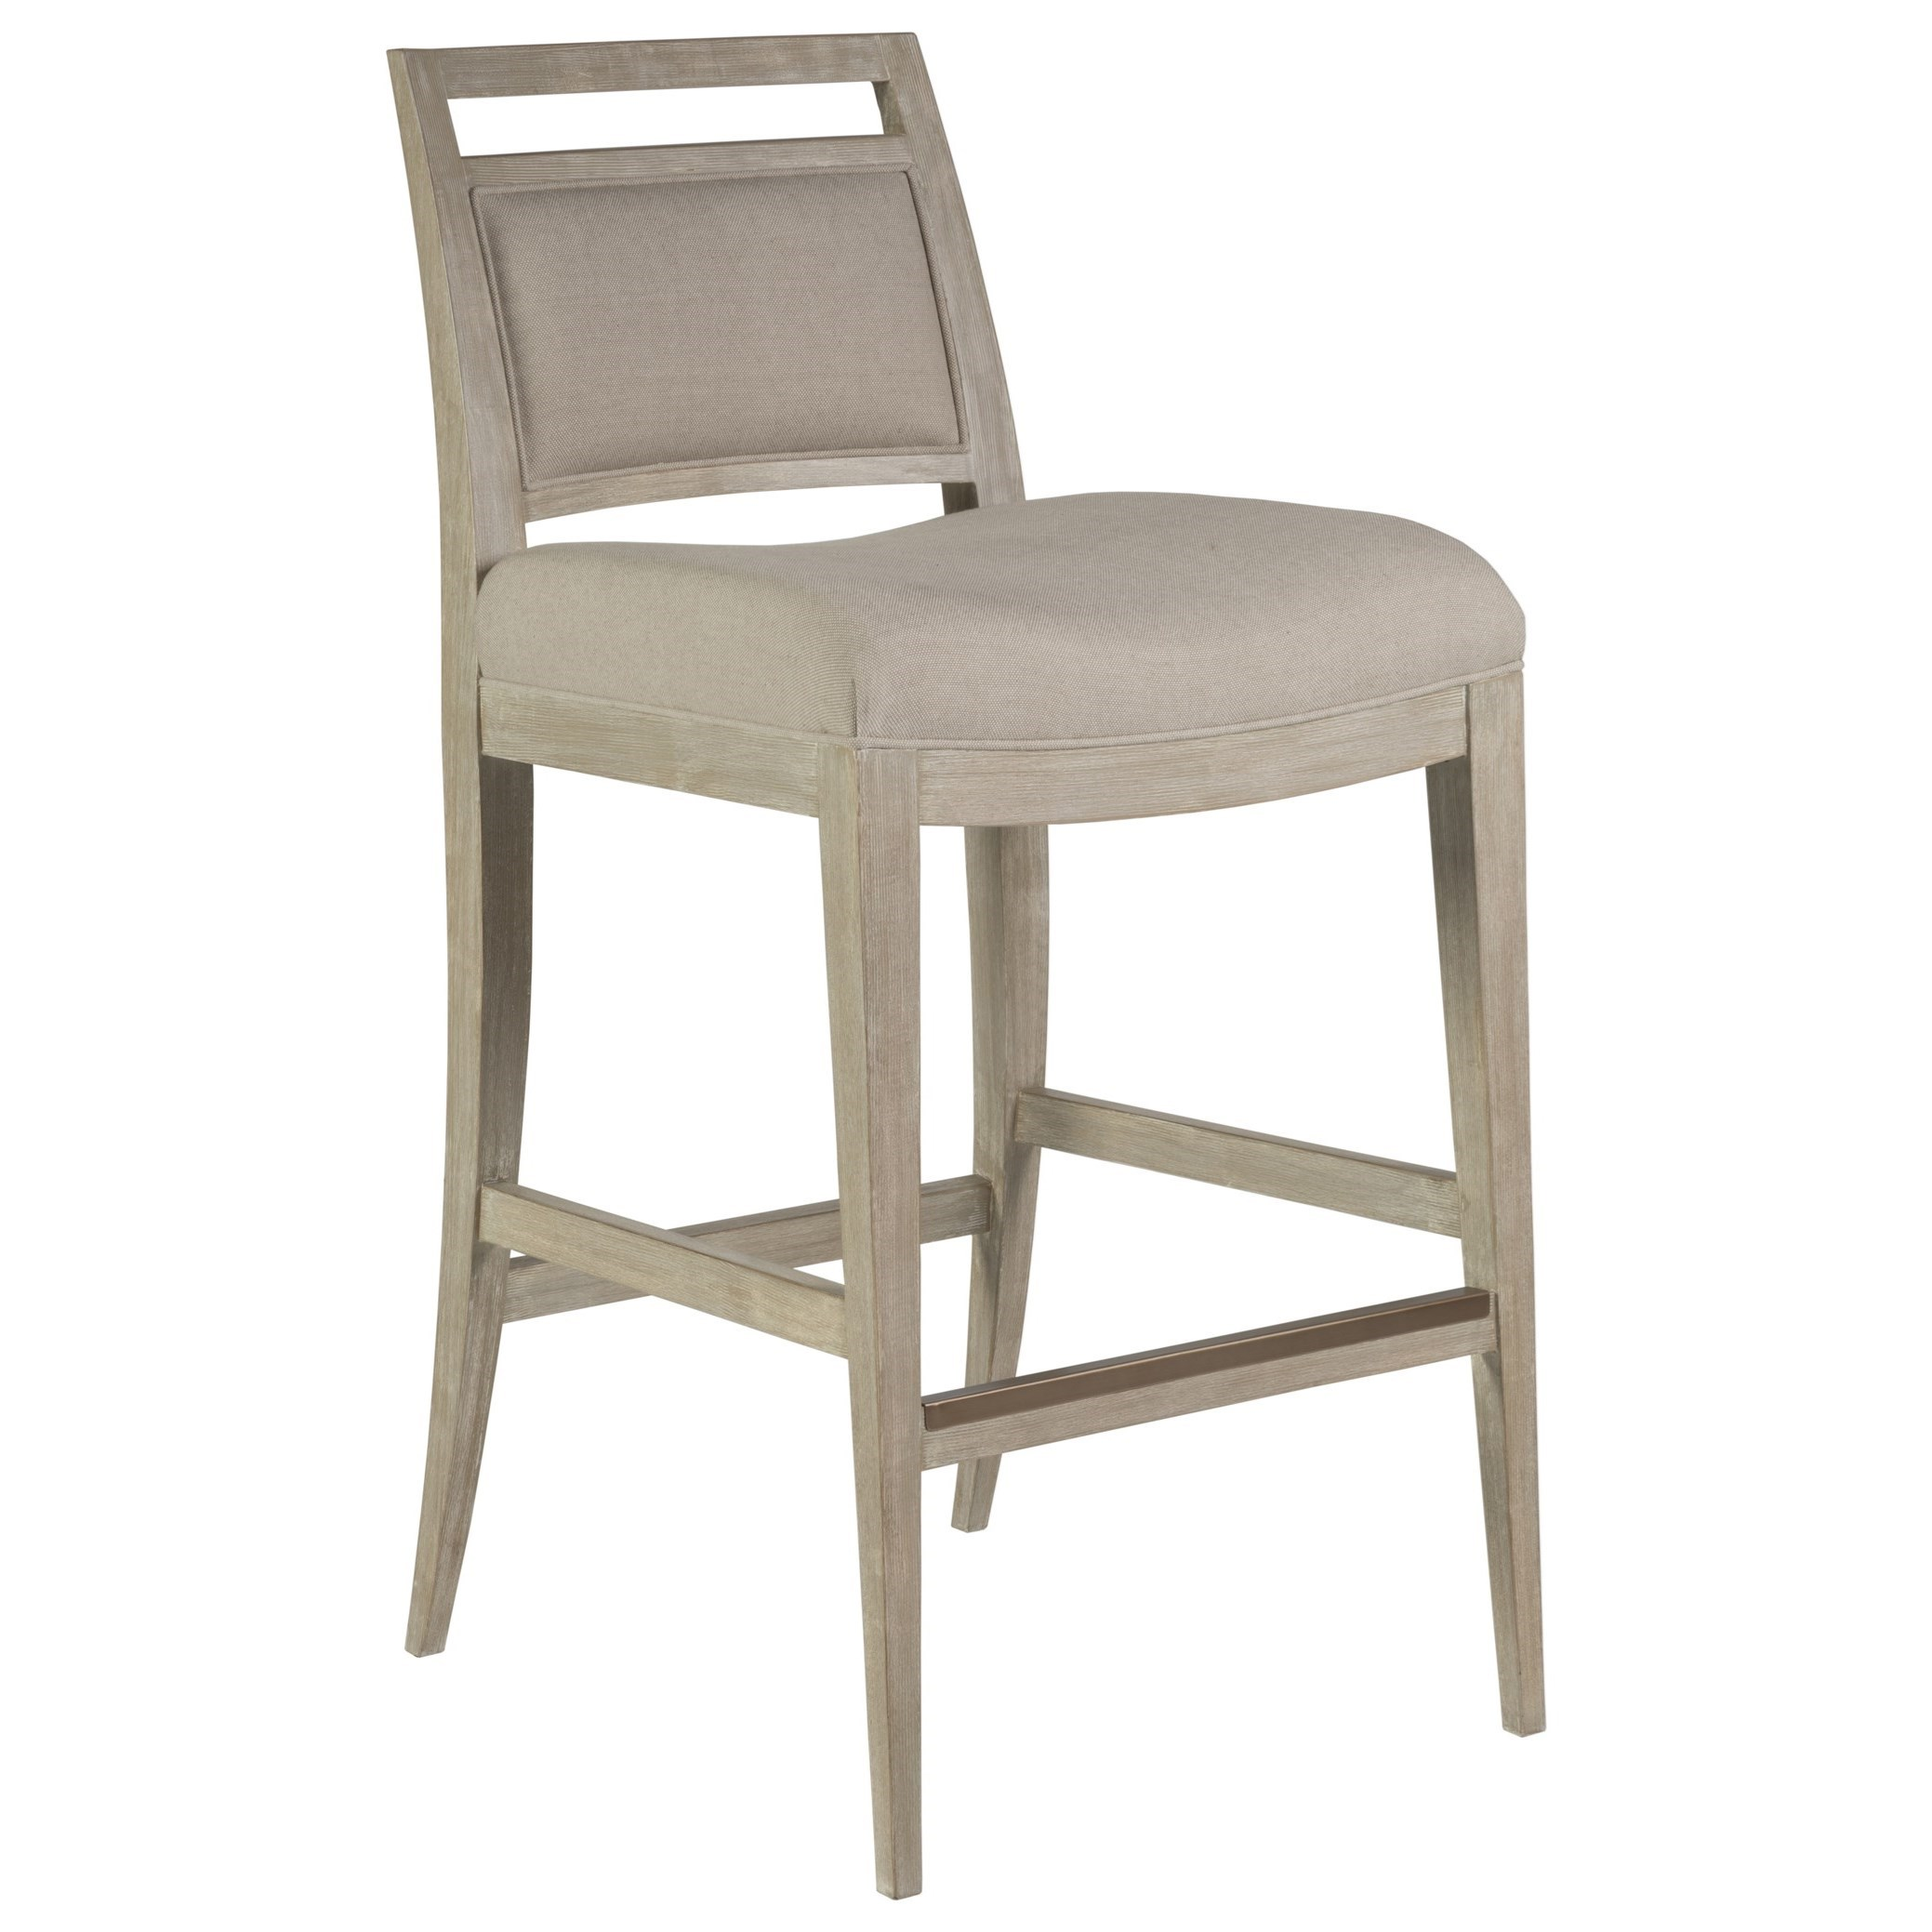 Cohesion Nico Upholstered Barstool by Artistica at Baer's Furniture